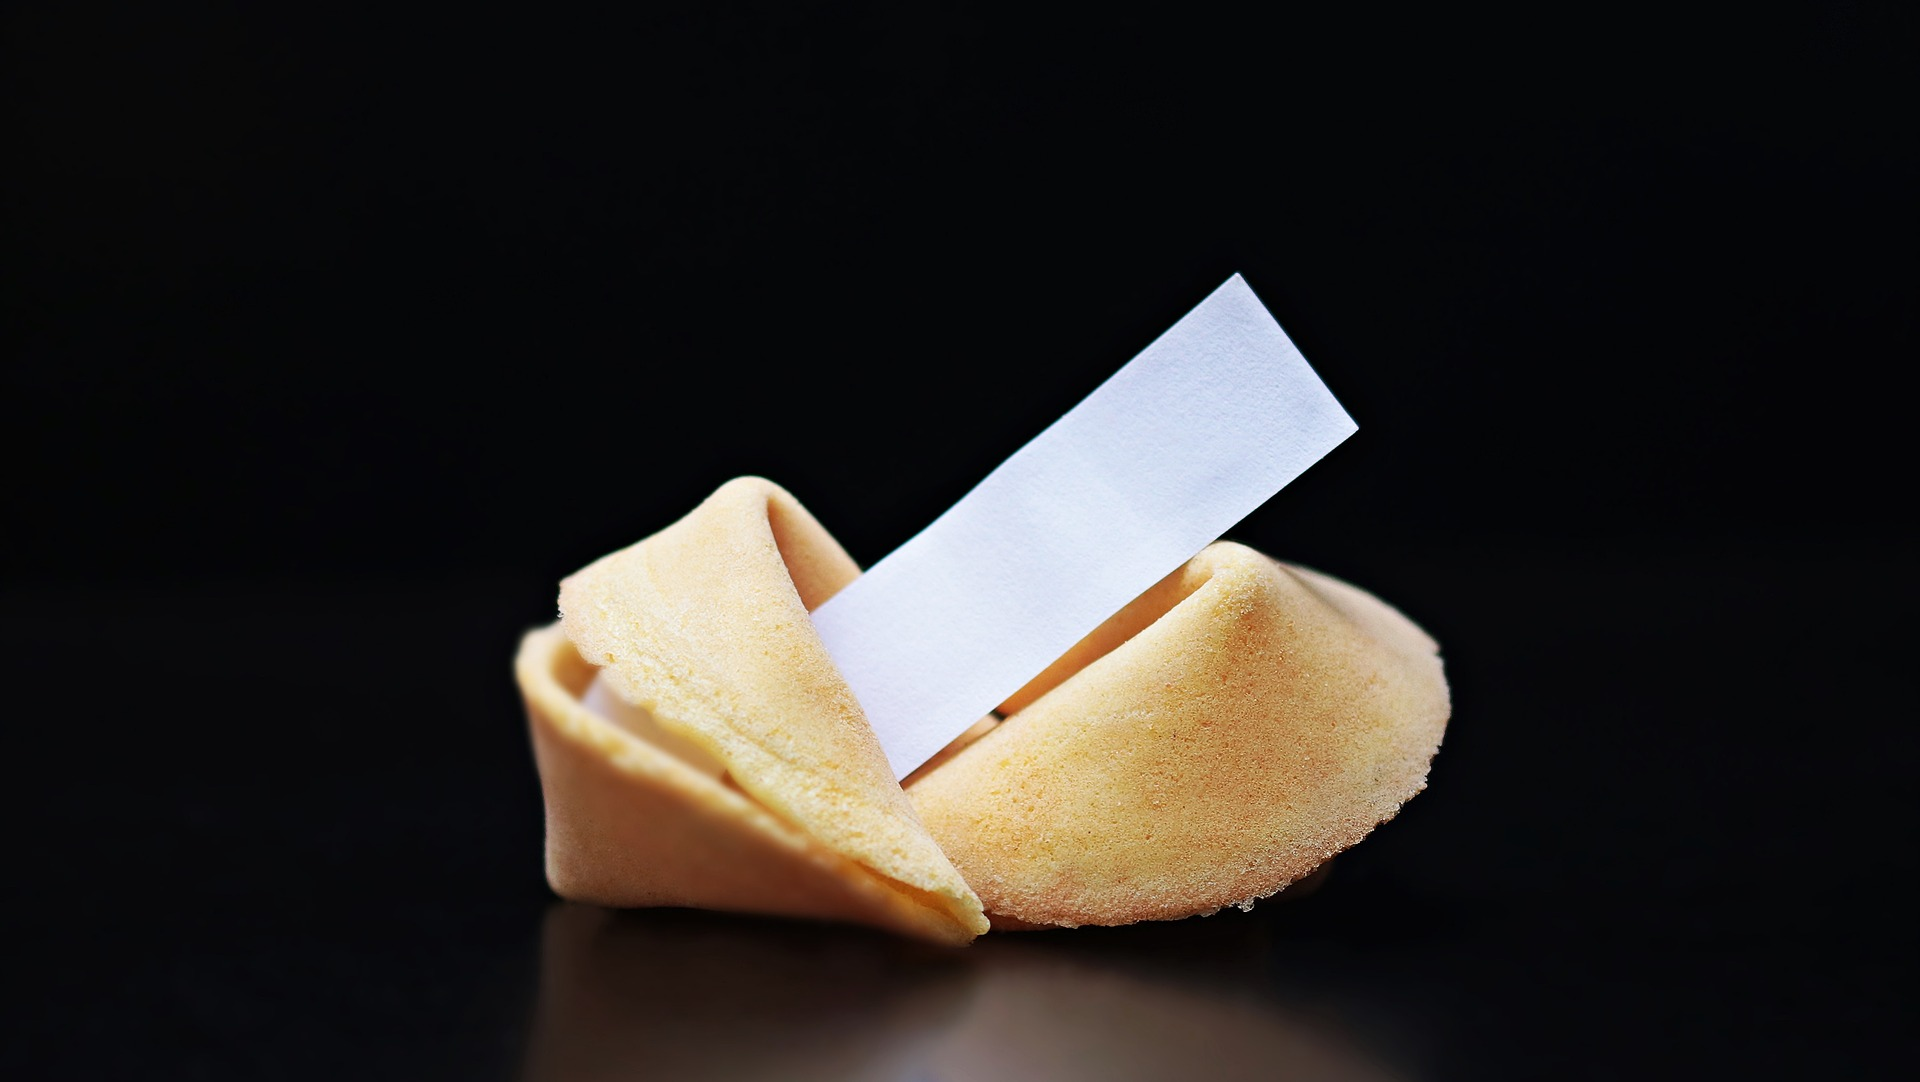 Are fortune cookies Chinese